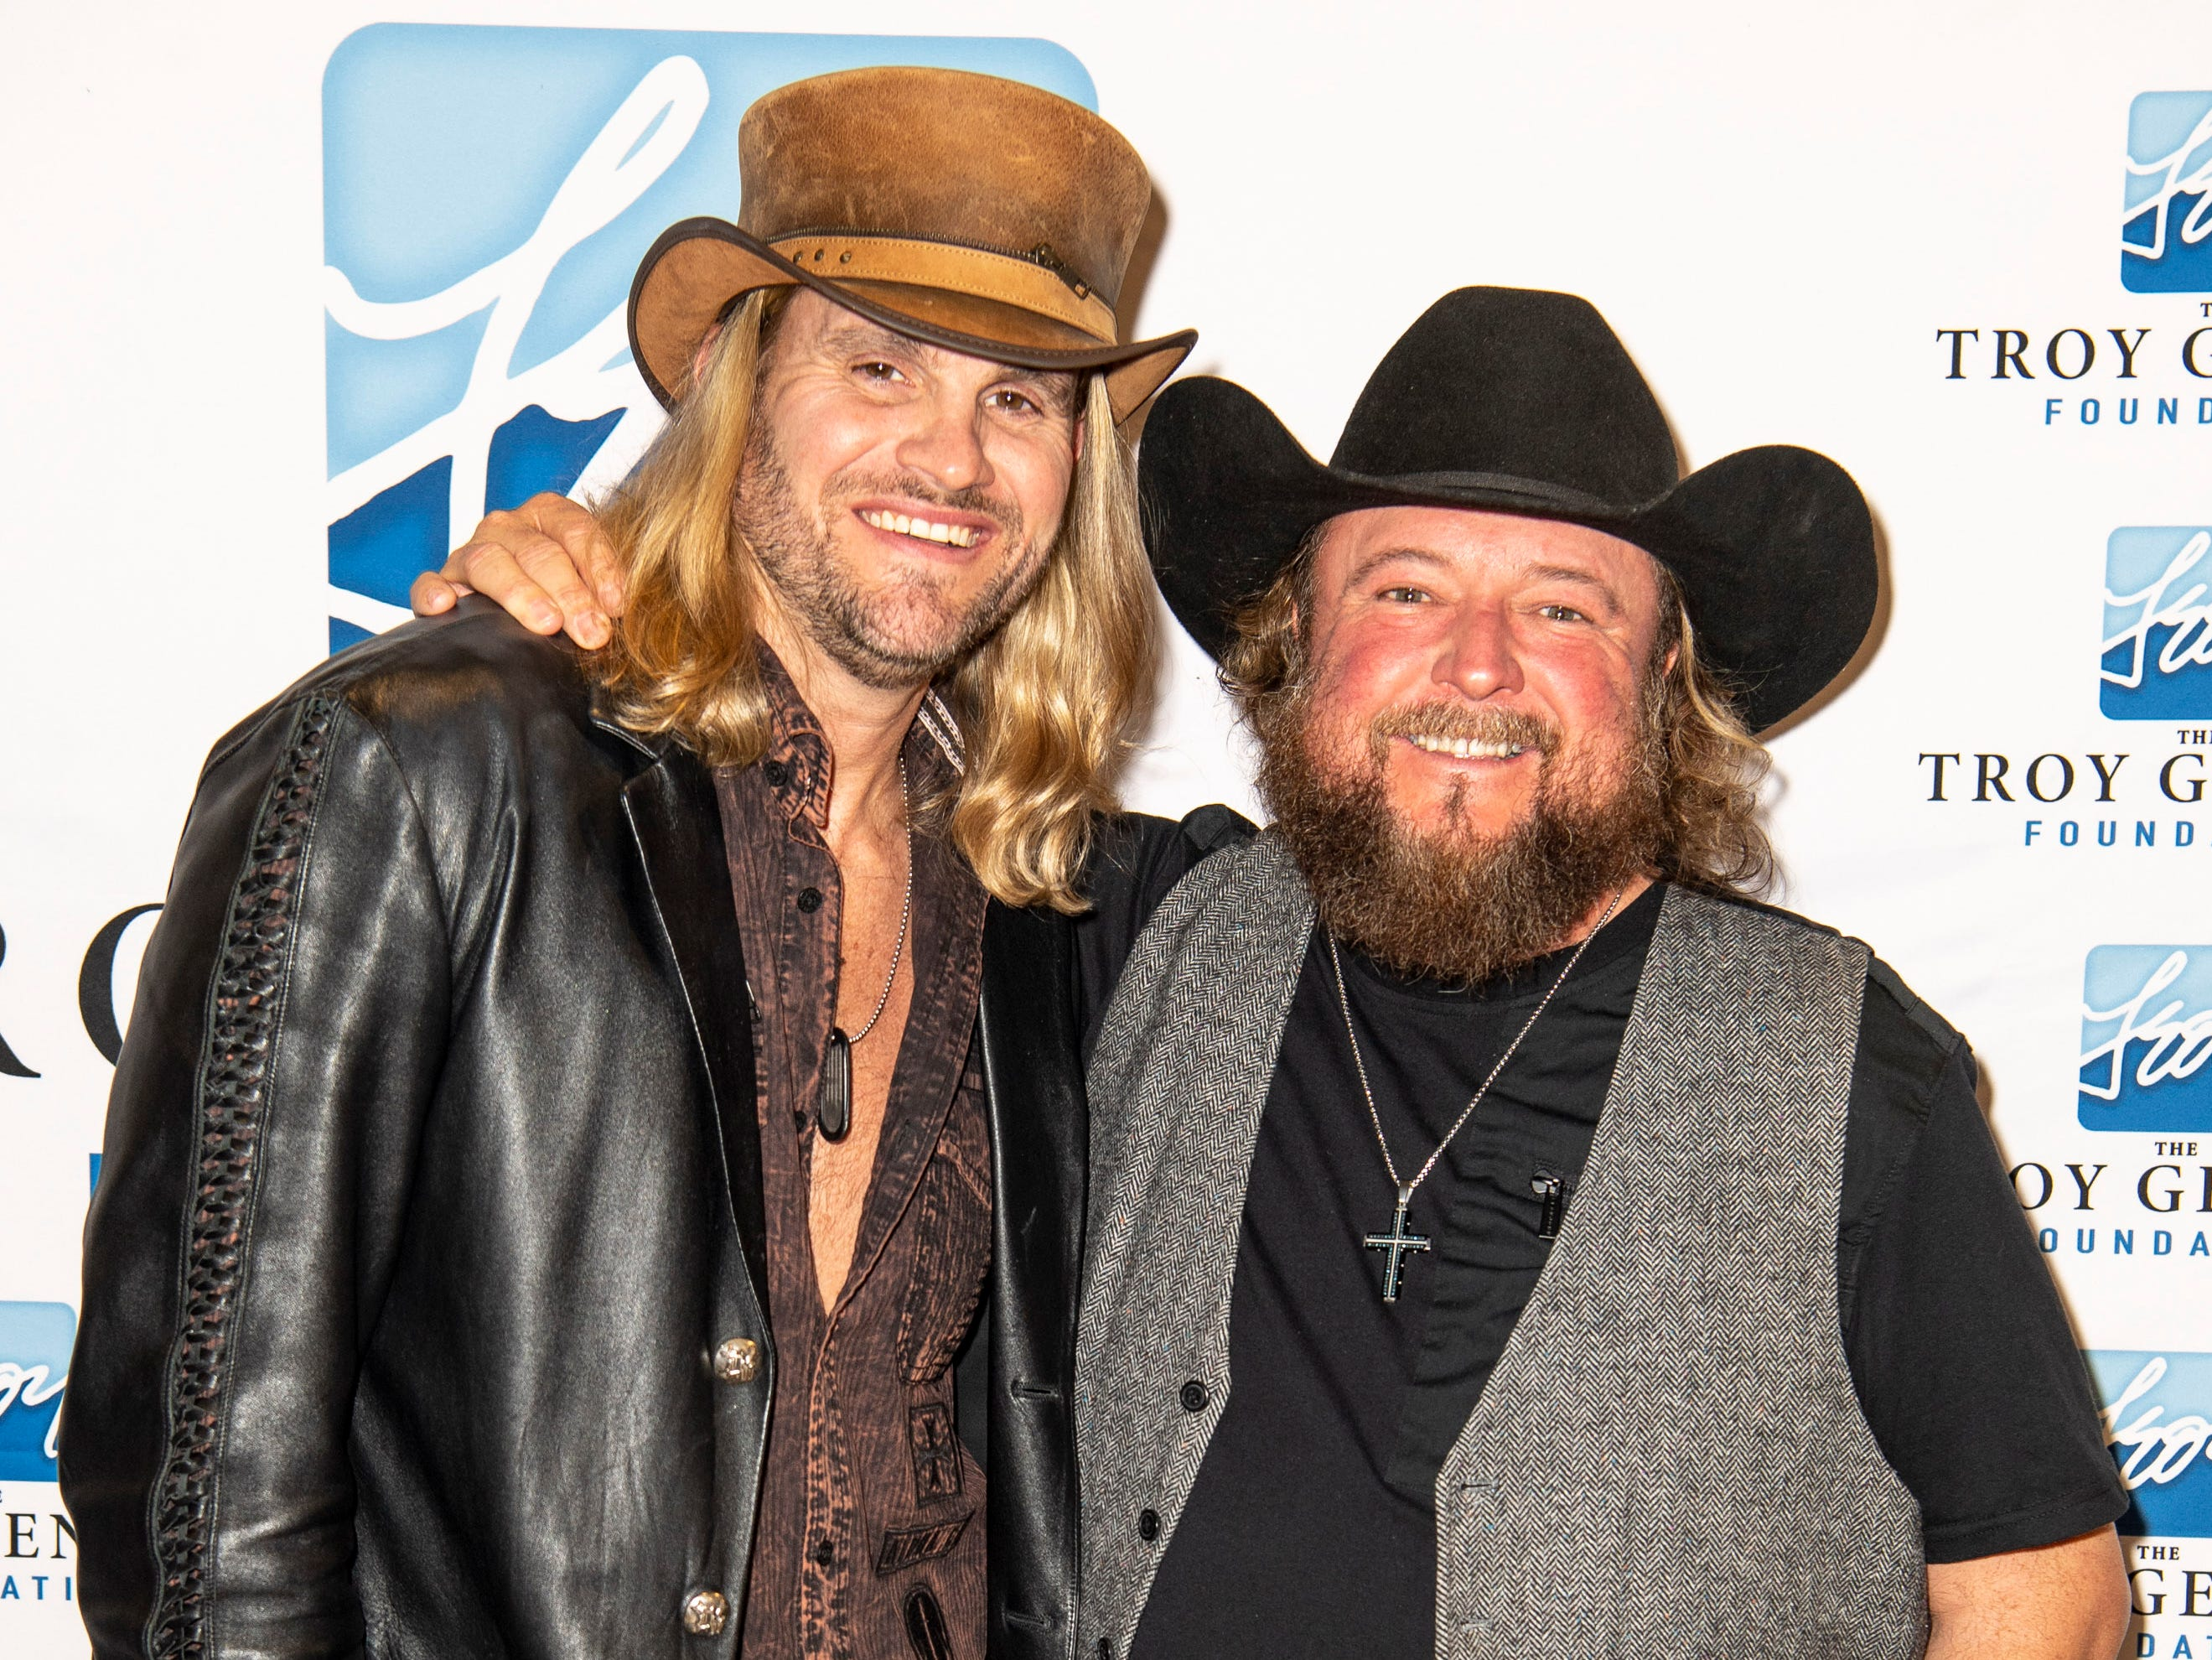 Ira Dean, left, and Colt Ford on the red carpet before the C'Ya On The Flipside Benefit Concert at the Grand Ole Opry House in Nashville, Tenn., Wednesday, Jan. 9, 2019.